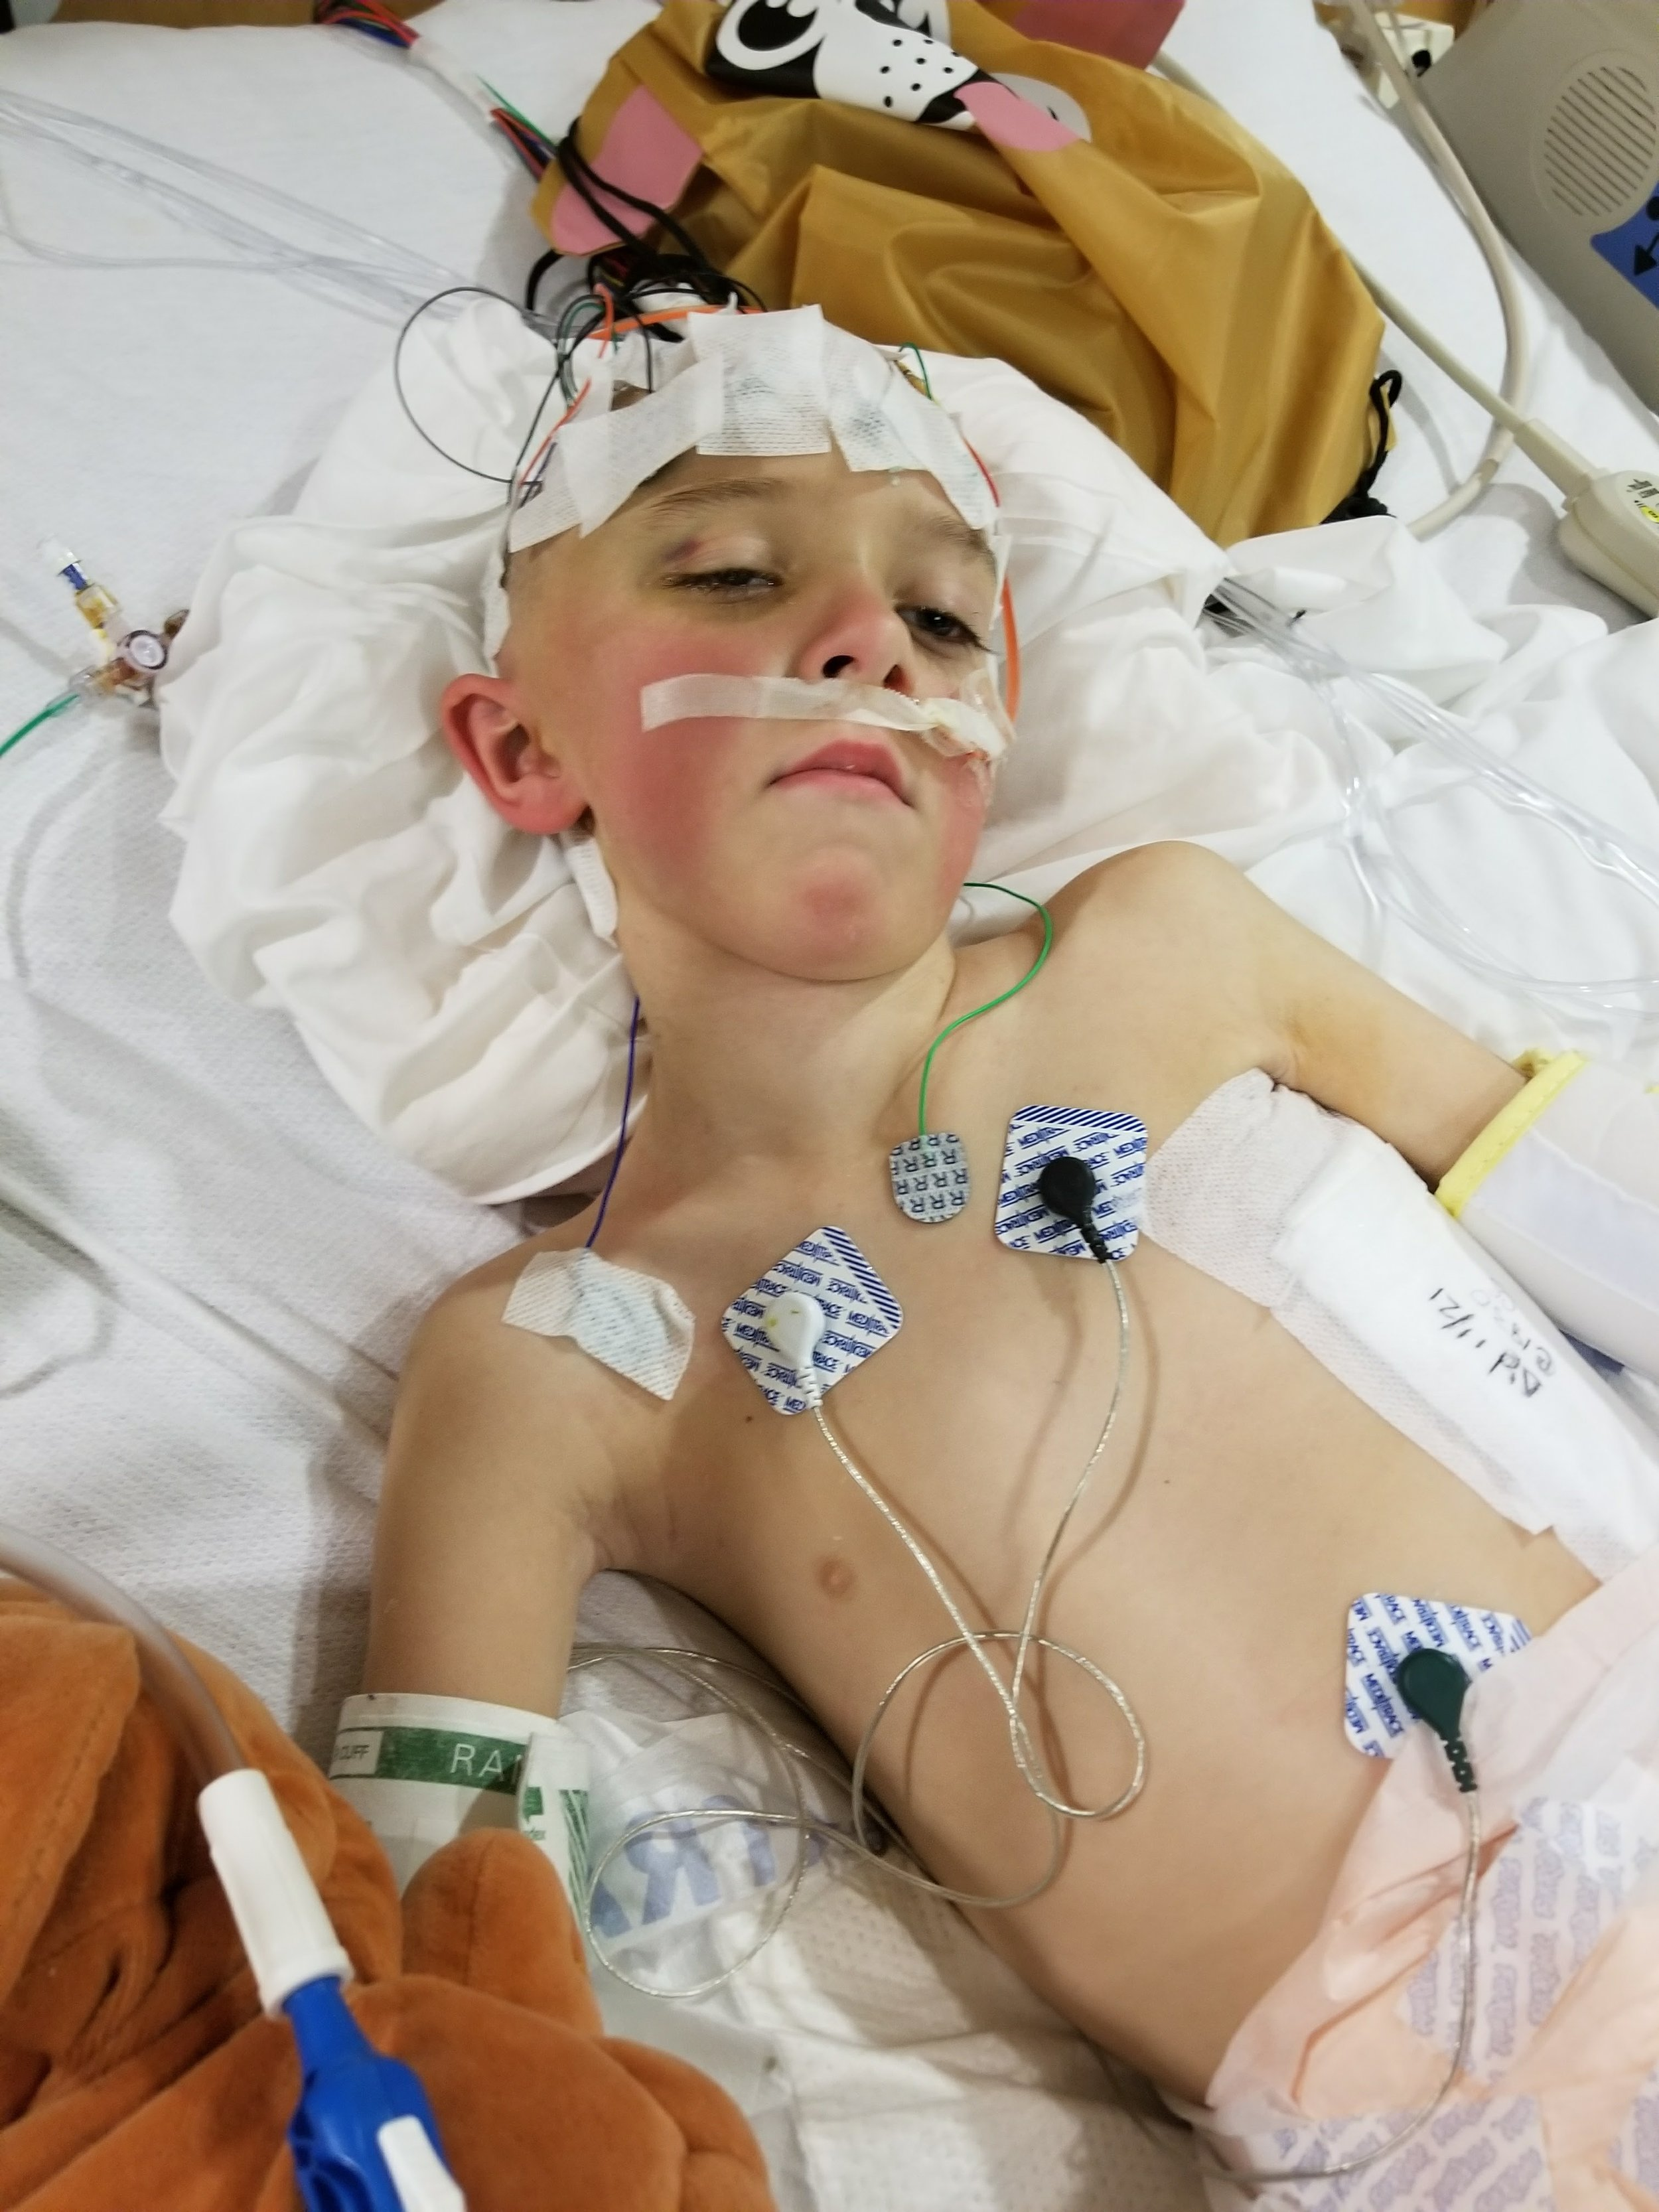 Christian spent 66 days in the Pediatric Intensive Care Unit at Riley Hospital for Children in 2017. He suffered from hysteria, pain, fevers and chills before contracting pneumonia.  | PHOTO COURTESY OF DAUGHERTY FAMILY